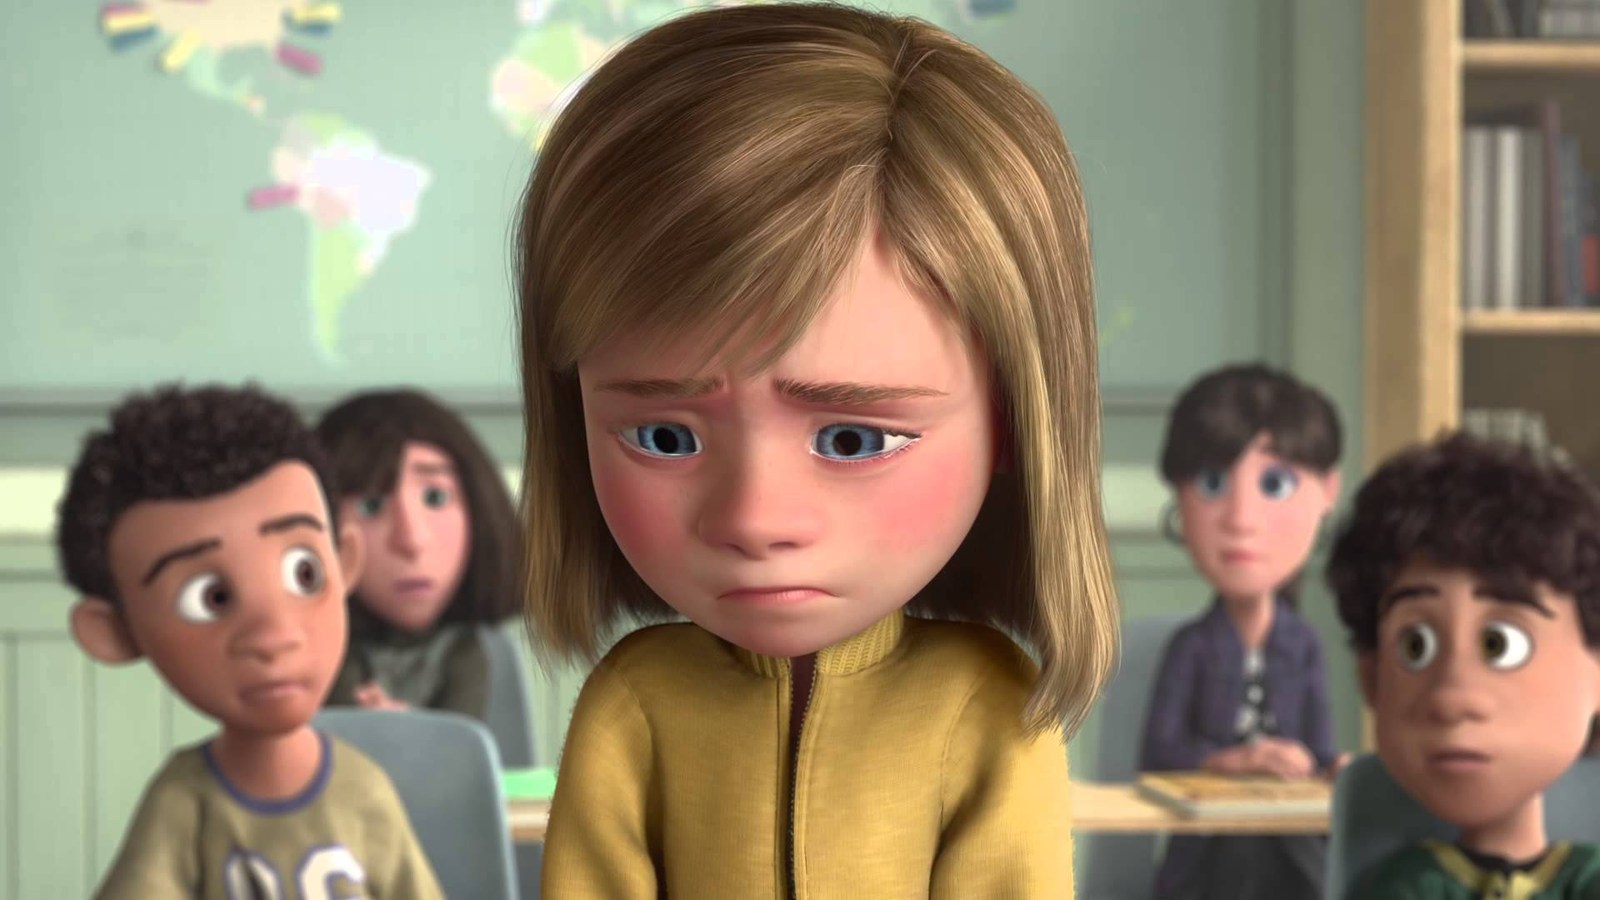 Someone Went And Edited Out All The Inside Parts Of Inside Out